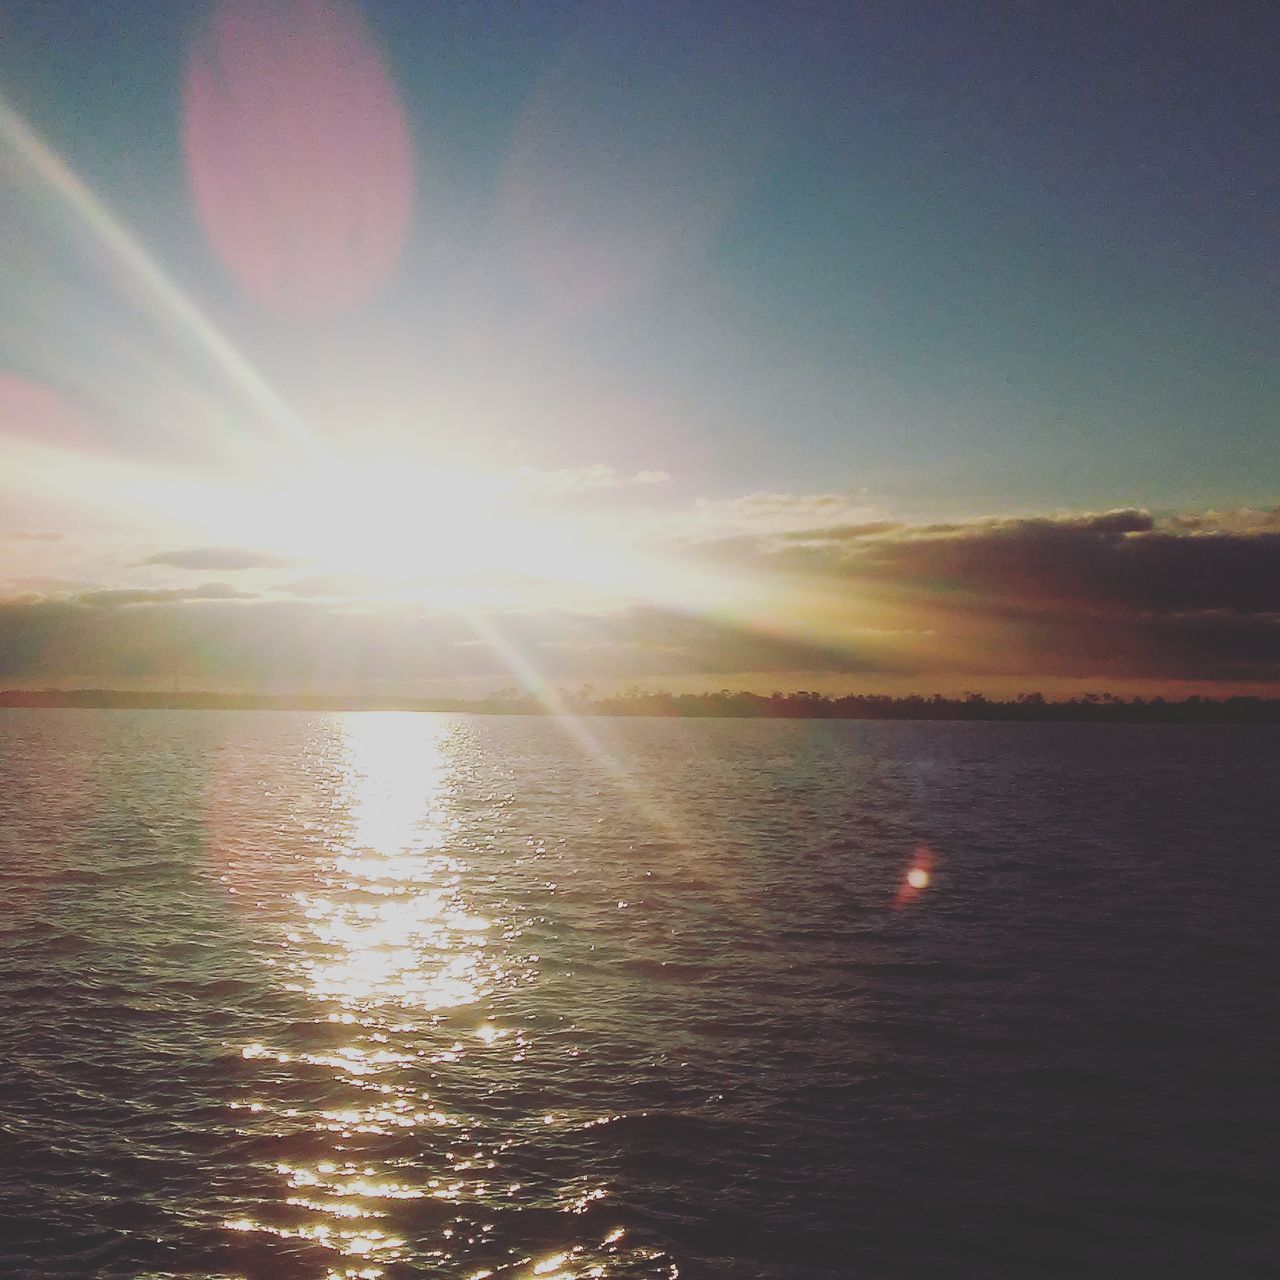 sun, sunset, sunbeam, lens flare, sunlight, scenics, beauty in nature, nature, tranquility, tranquil scene, sea, sky, no people, idyllic, reflection, water, outdoors, day